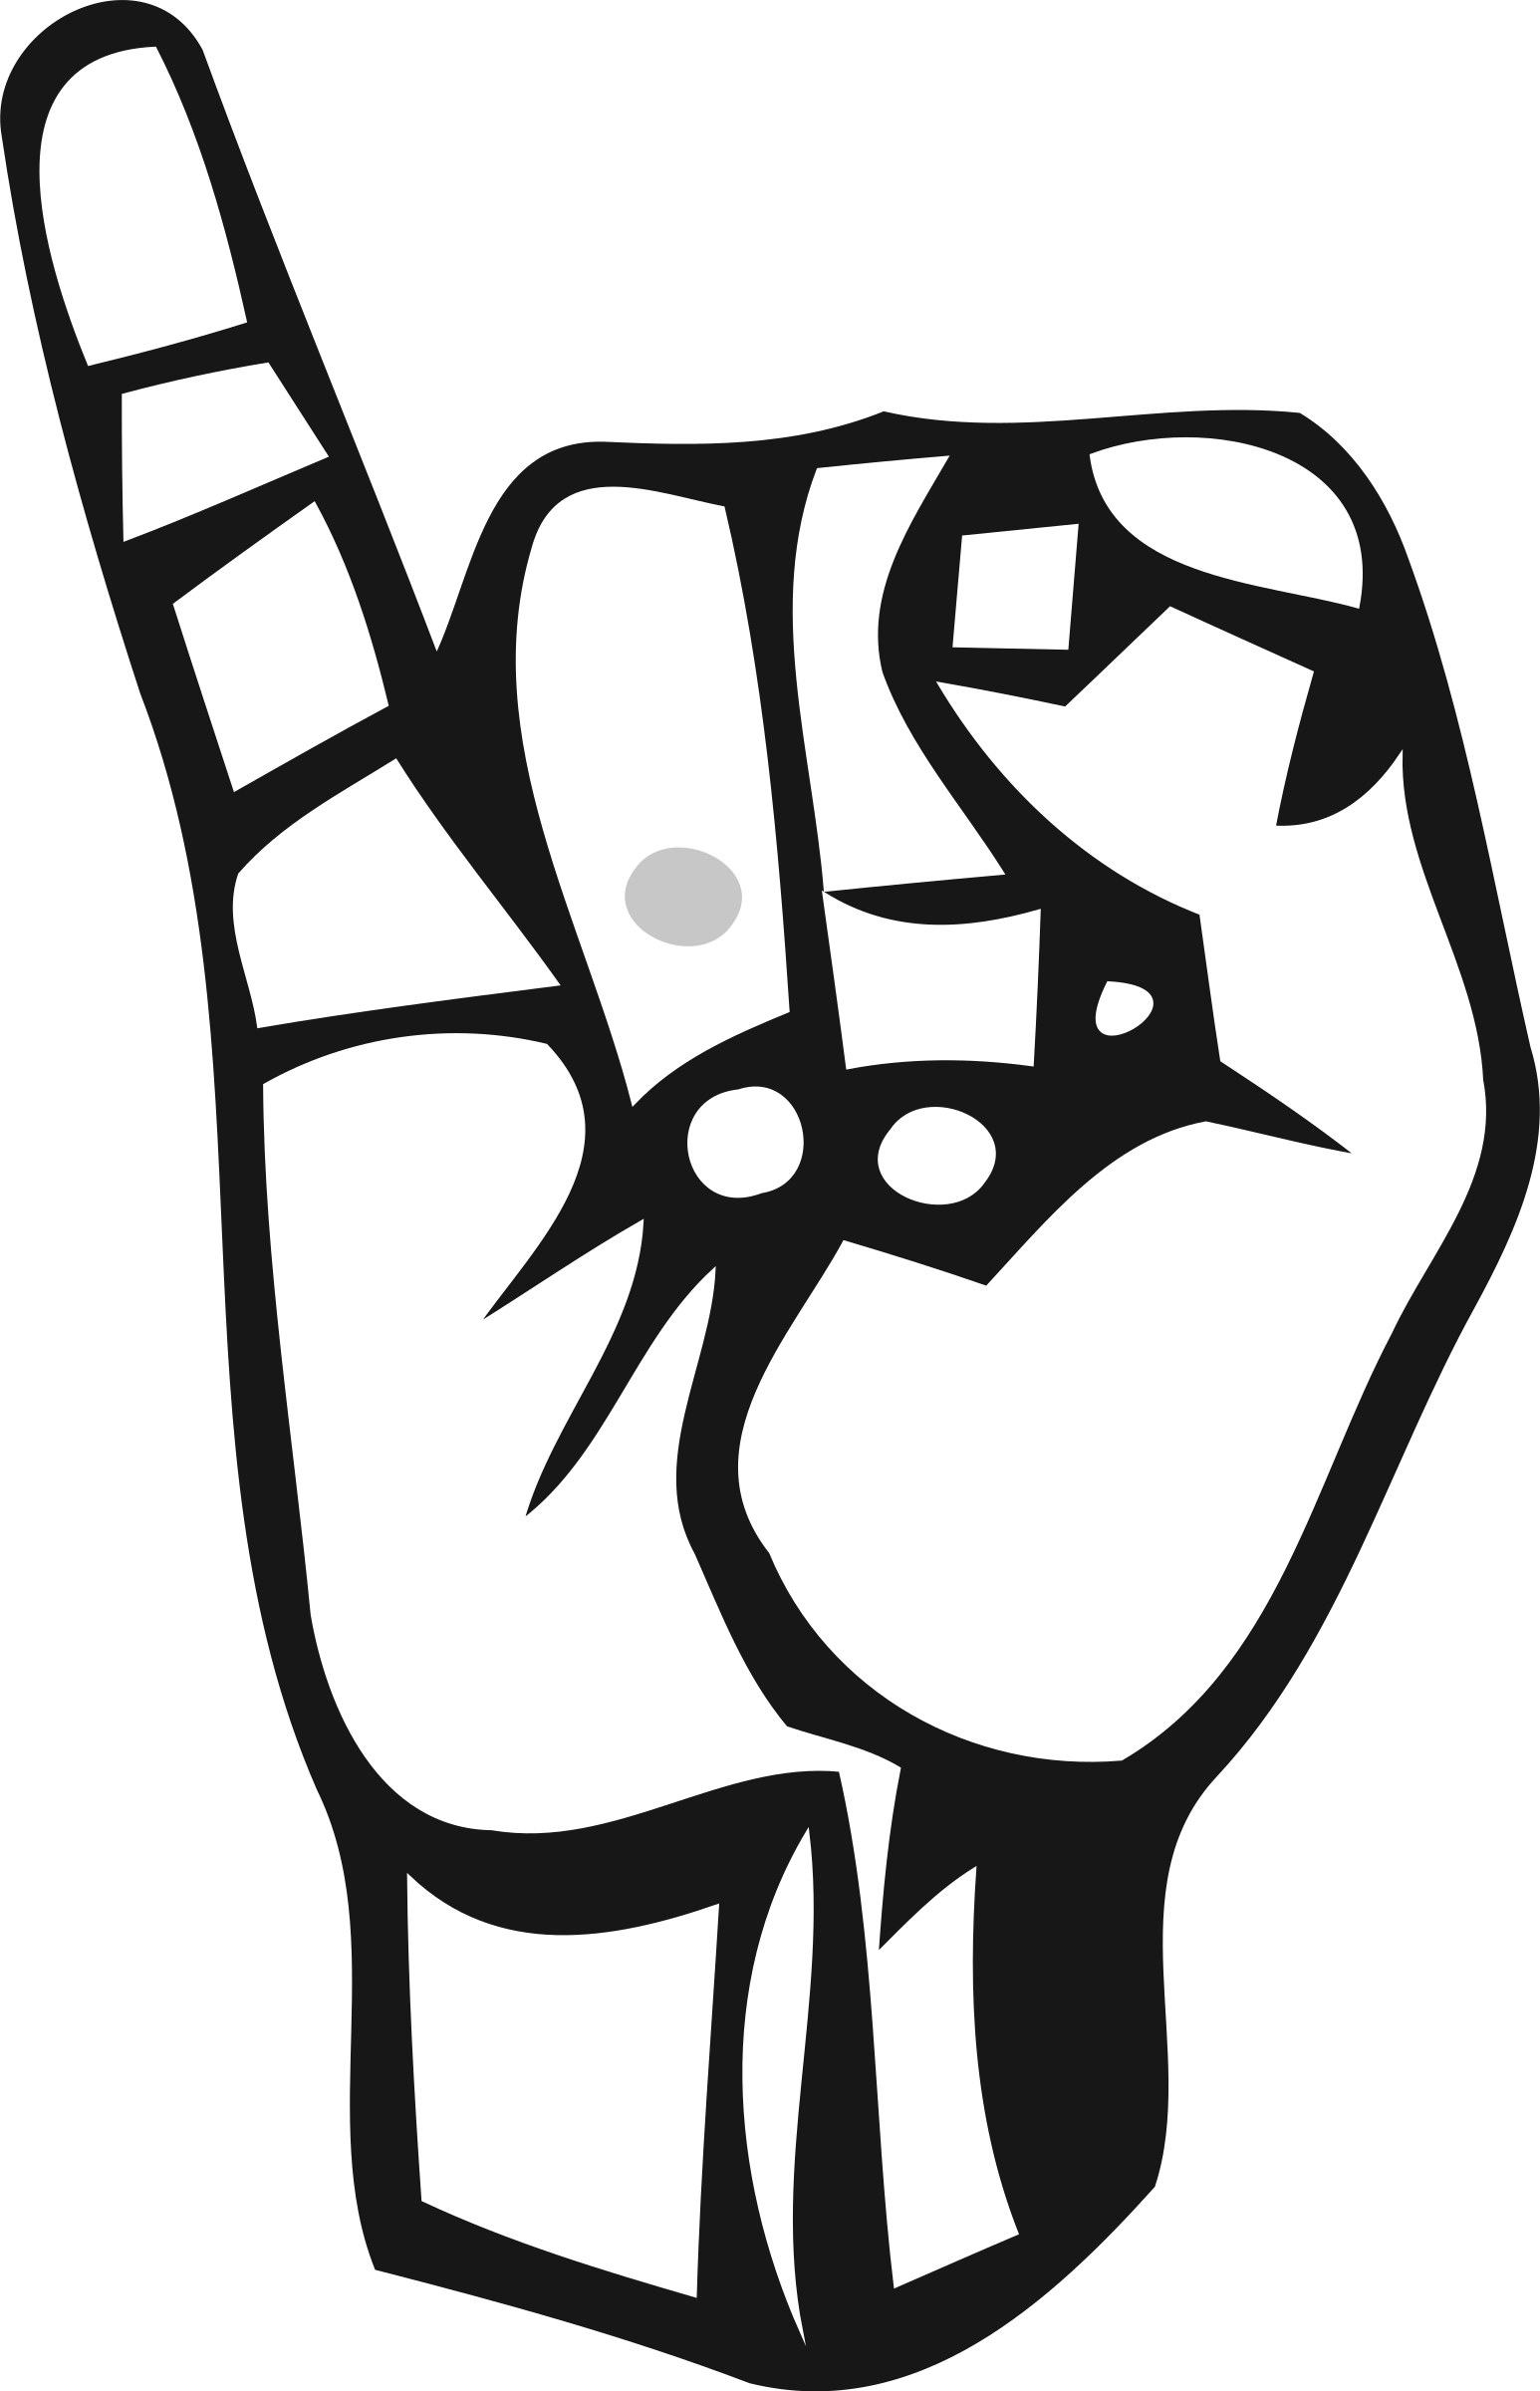 Hand clipart hang loose. I love you sign